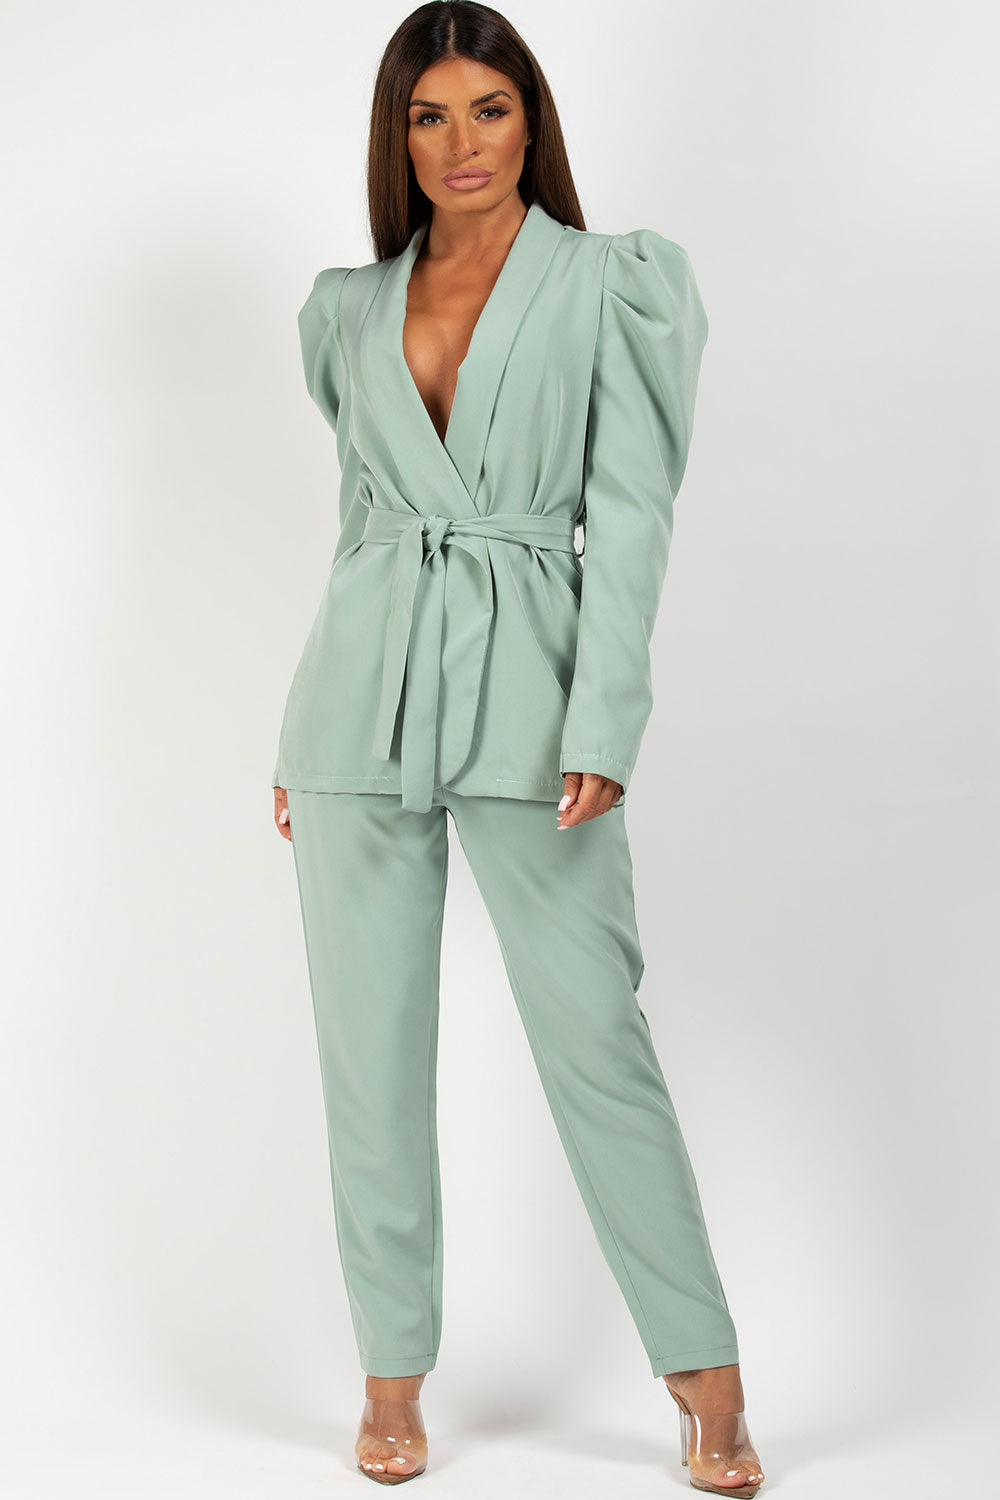 mint puff sleeve blazer and trousers set